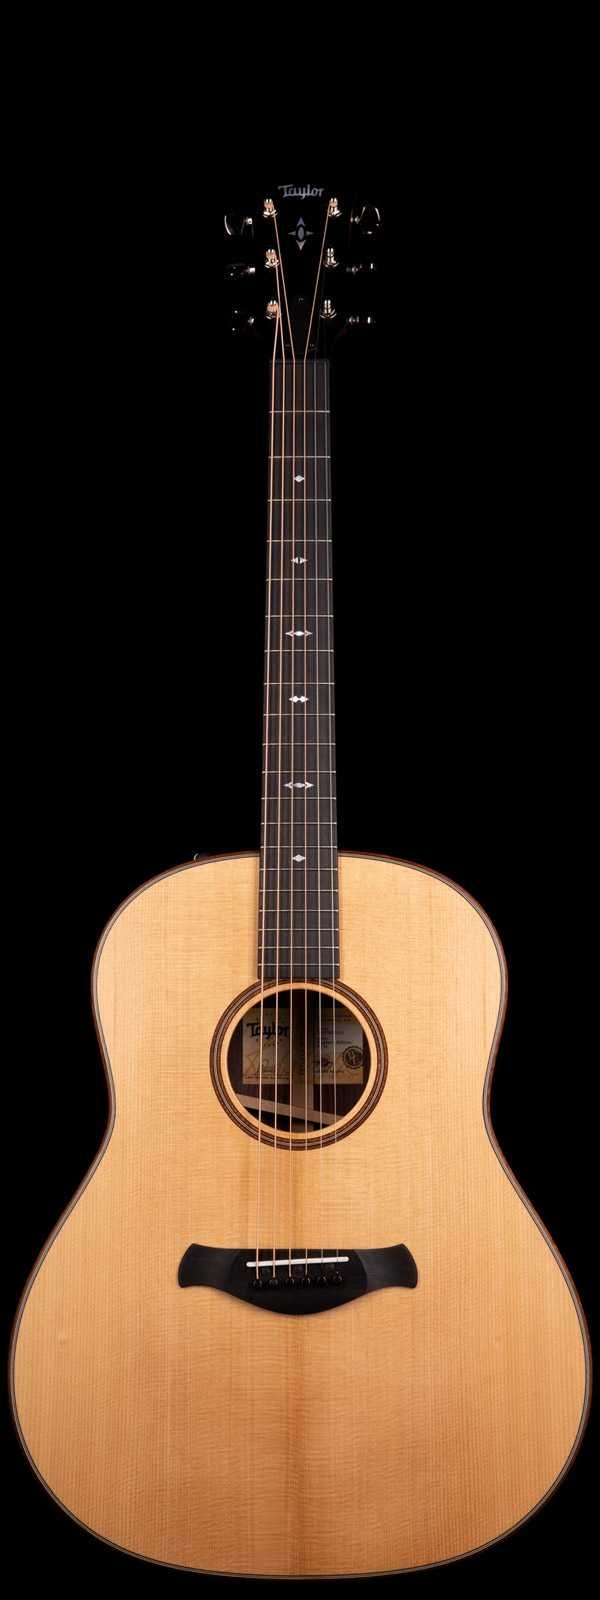 Taylor Builder's Edition 717e V-Class Natural